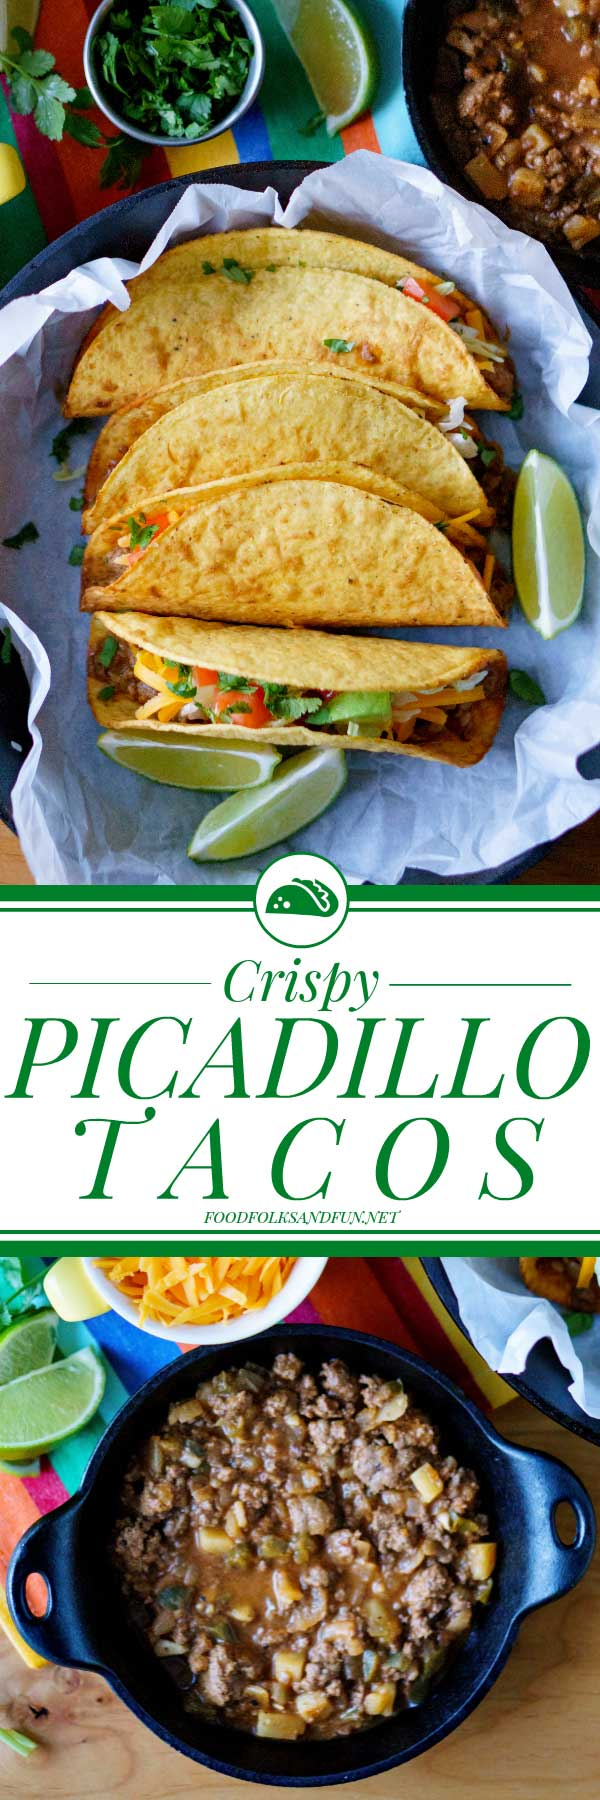 These Picadillo Tacos recipe (Tacos de Picadillo) are crispy ground beef and potato tacos that are easy to make and feed a crowd. via @foodfolksandfun